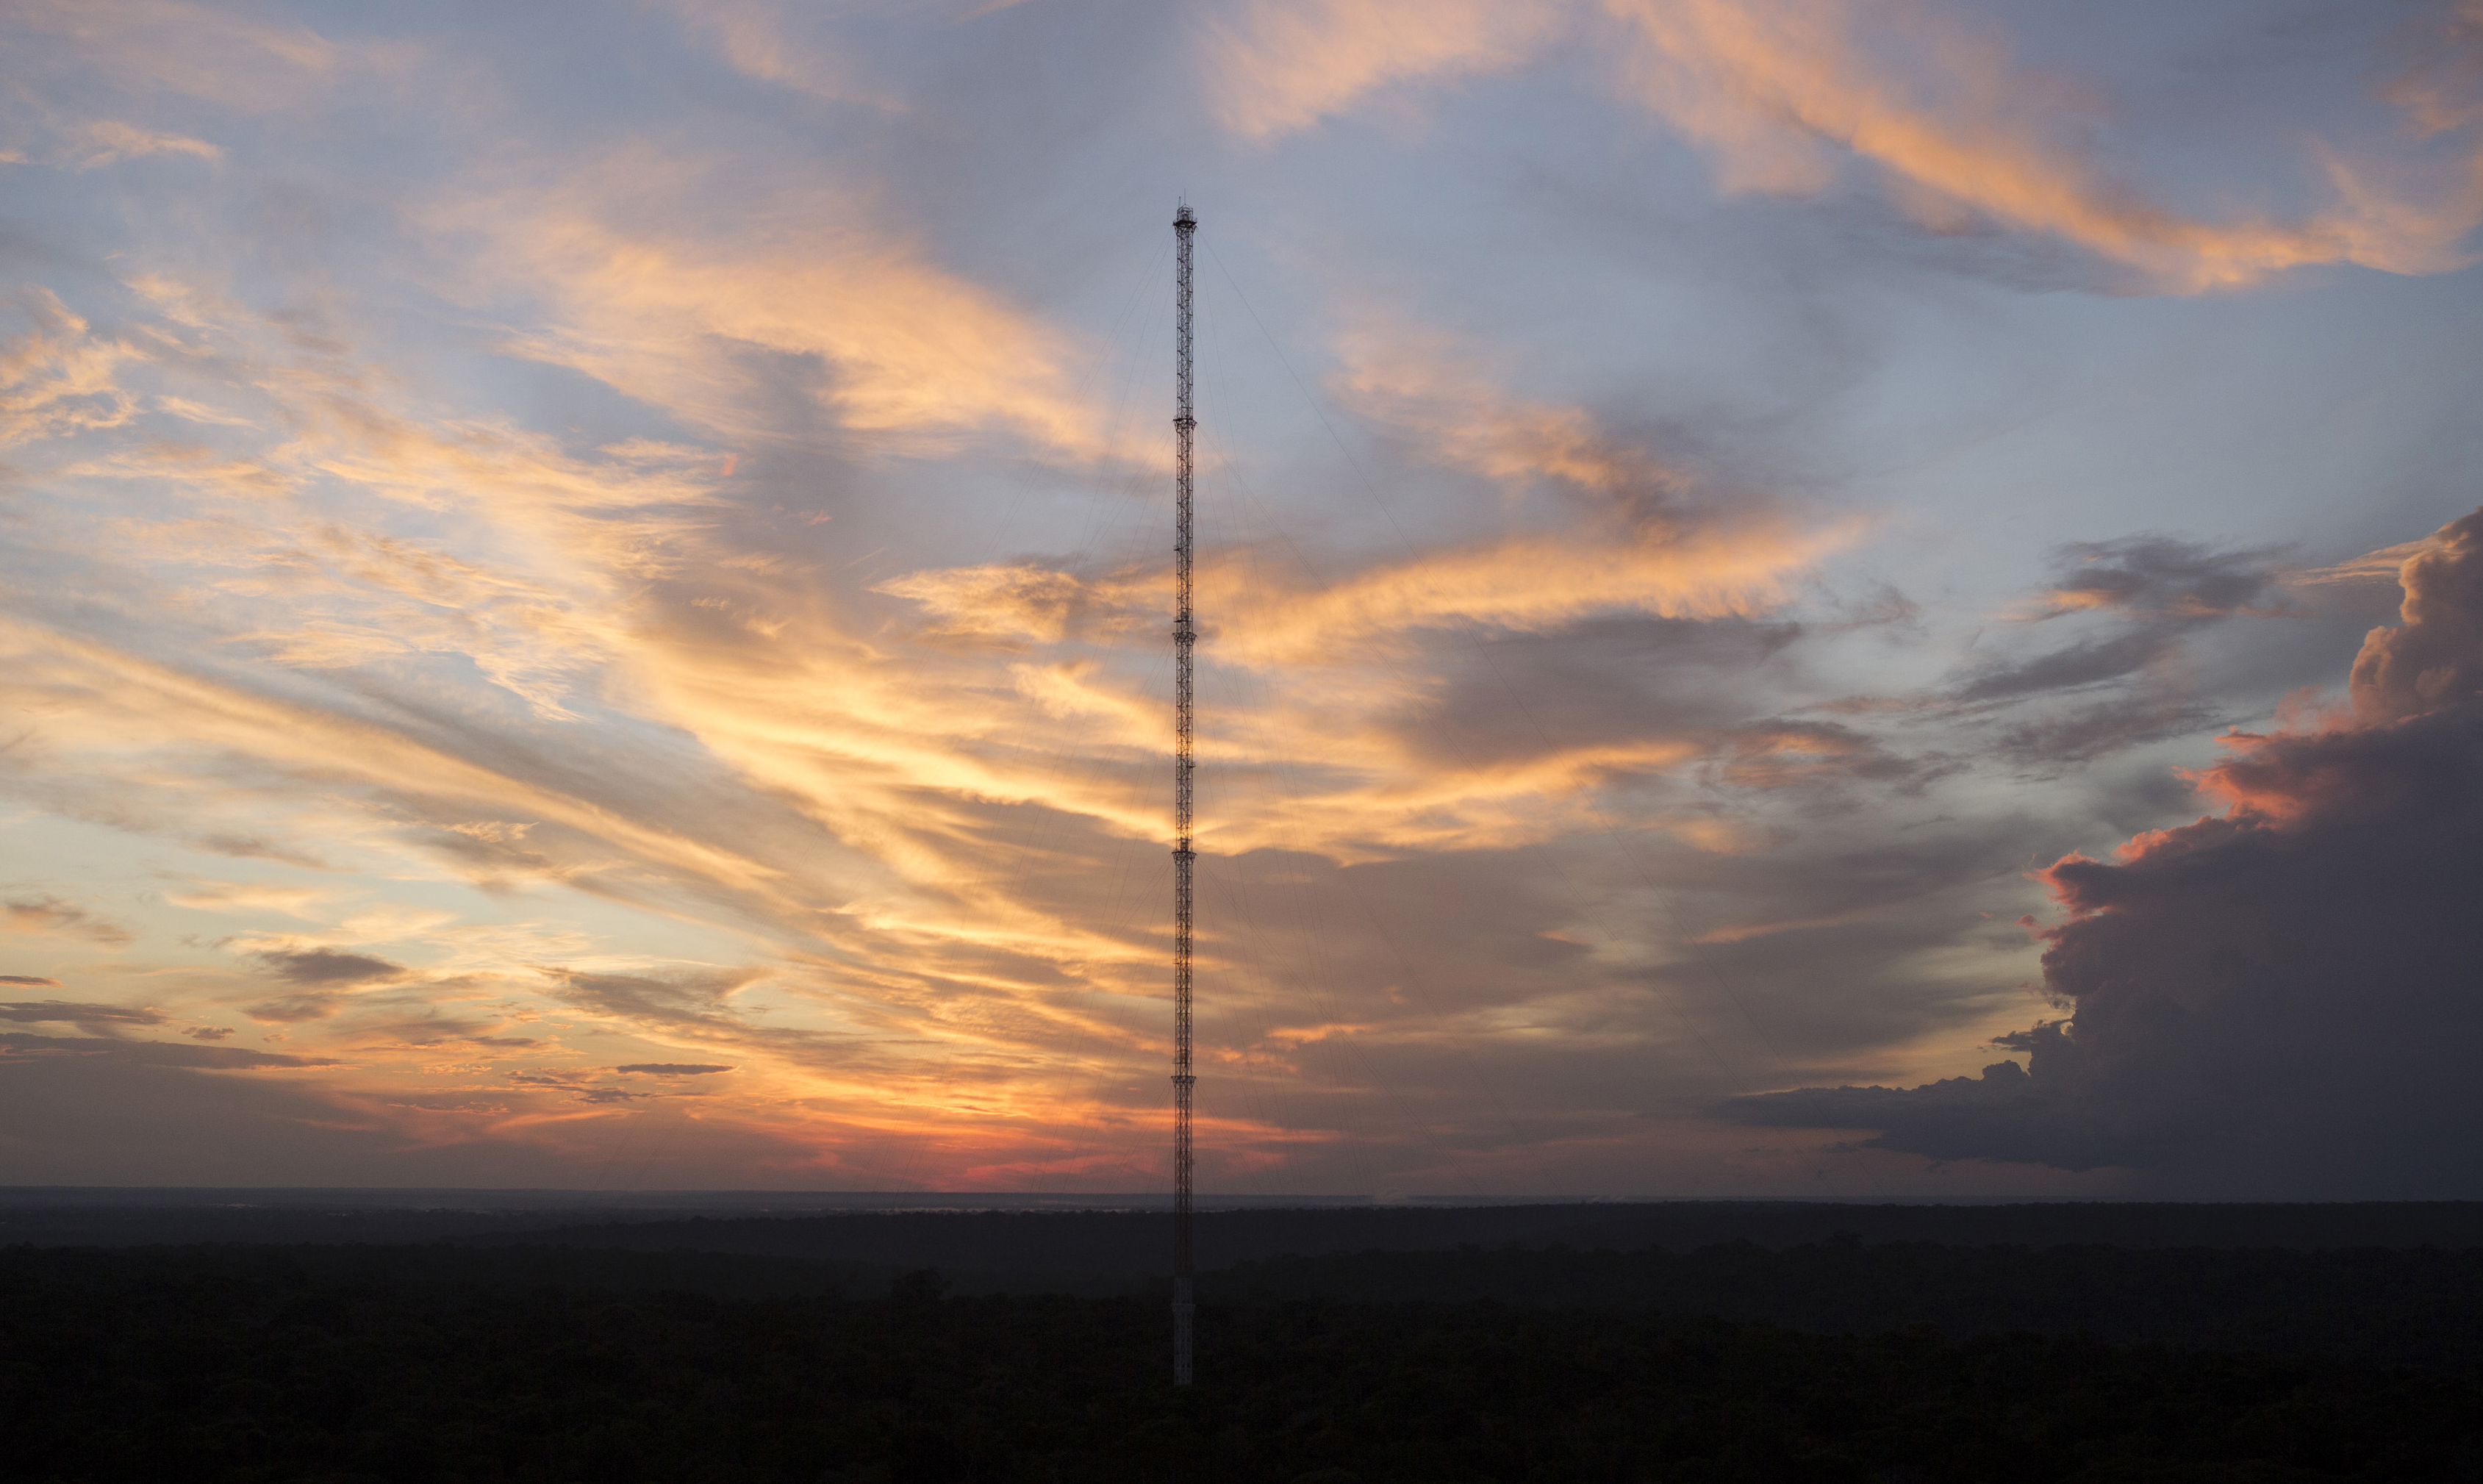 The Amazon Tall Tower Observatory (ATTO) is pictured during a sunset in Sao Sebastiao do Uatuma in the middle of the Amazon forest in Amazonas state January 8, 2015. Photo by Bruno Kelly/Reuters